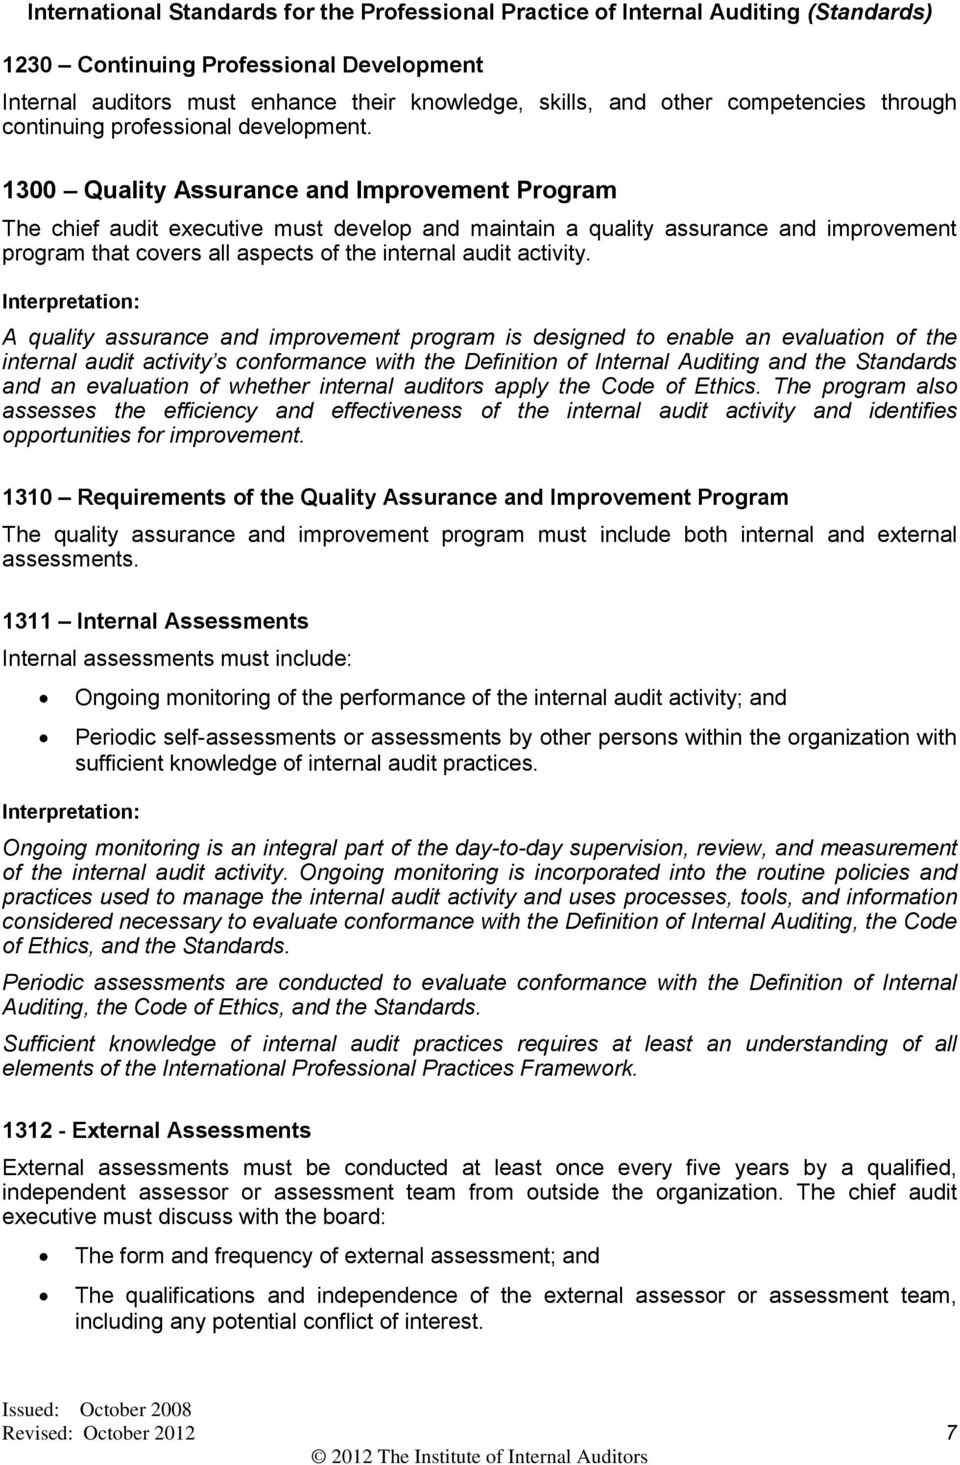 A quality assurance and improvement program is designed to enable an evaluation of the internal audit activity s conformance with the Definition of Internal Auditing and the Standards and an